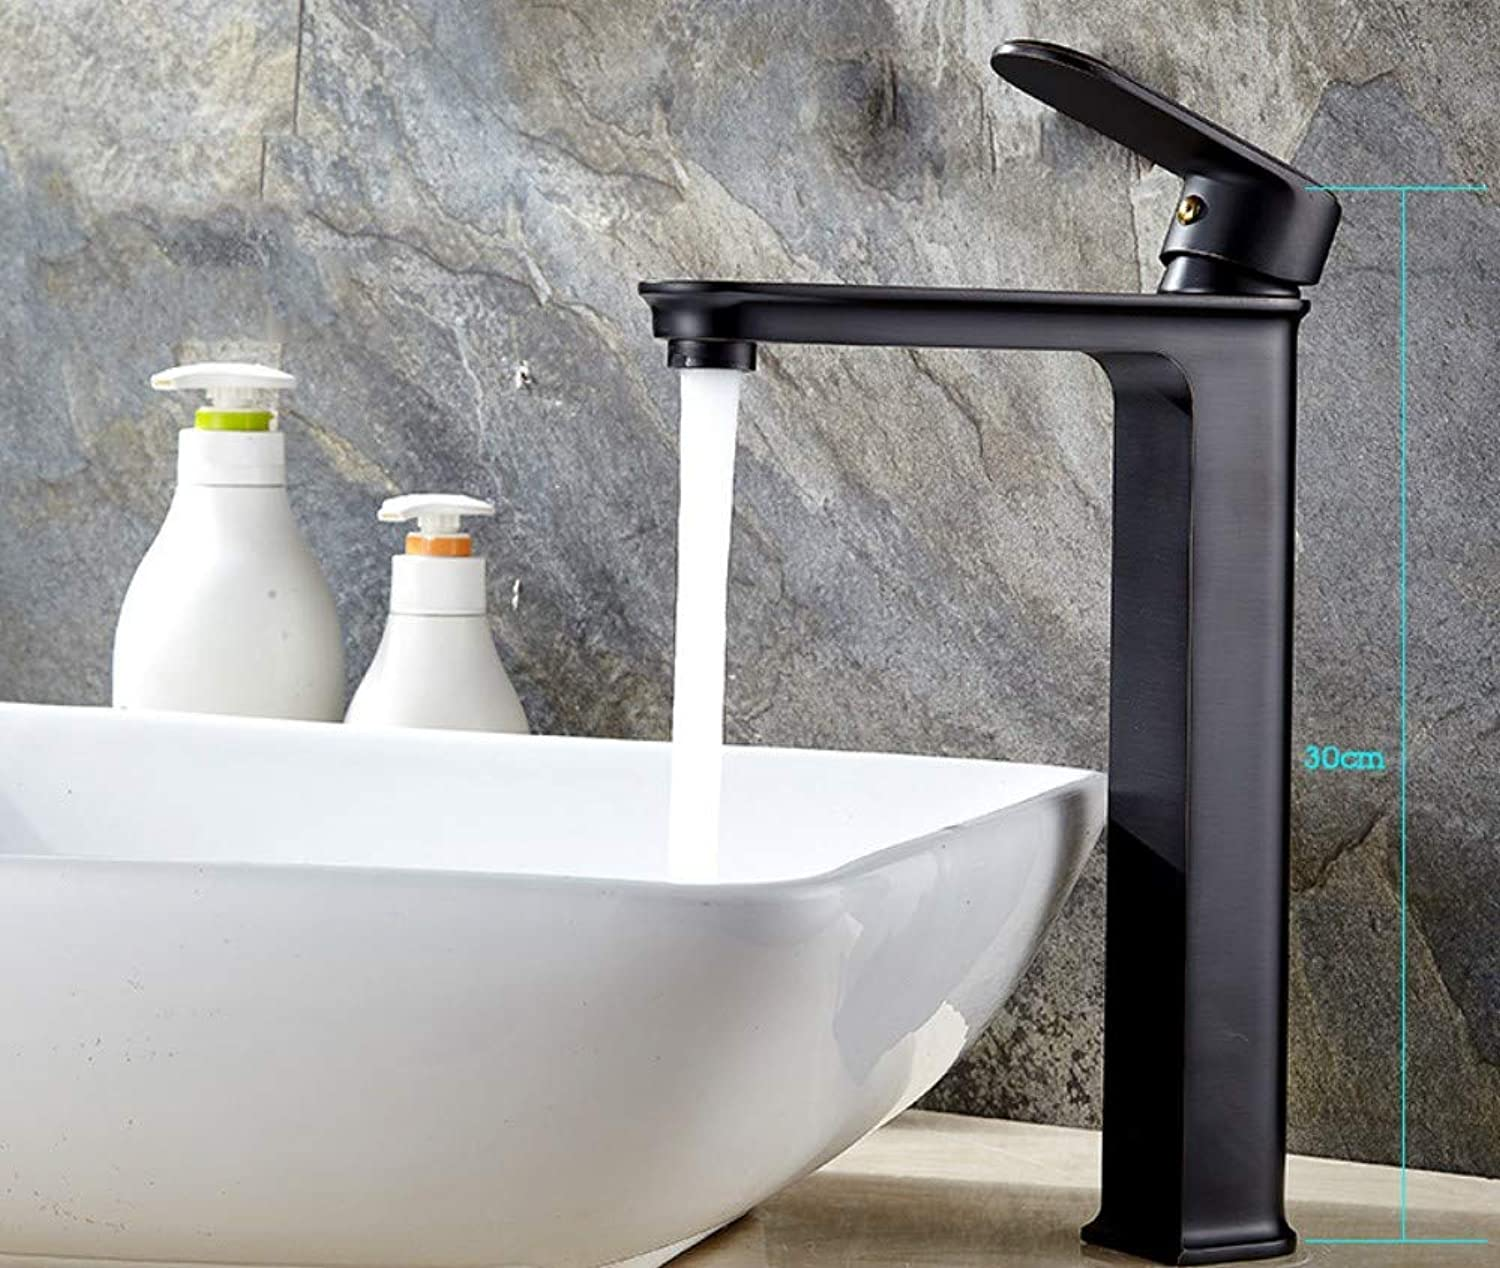 Black Copper Bathroom Faucet Hot and Cold Above Counter Basin Heightened Washbasin Black Ancient Faucet, Round 2